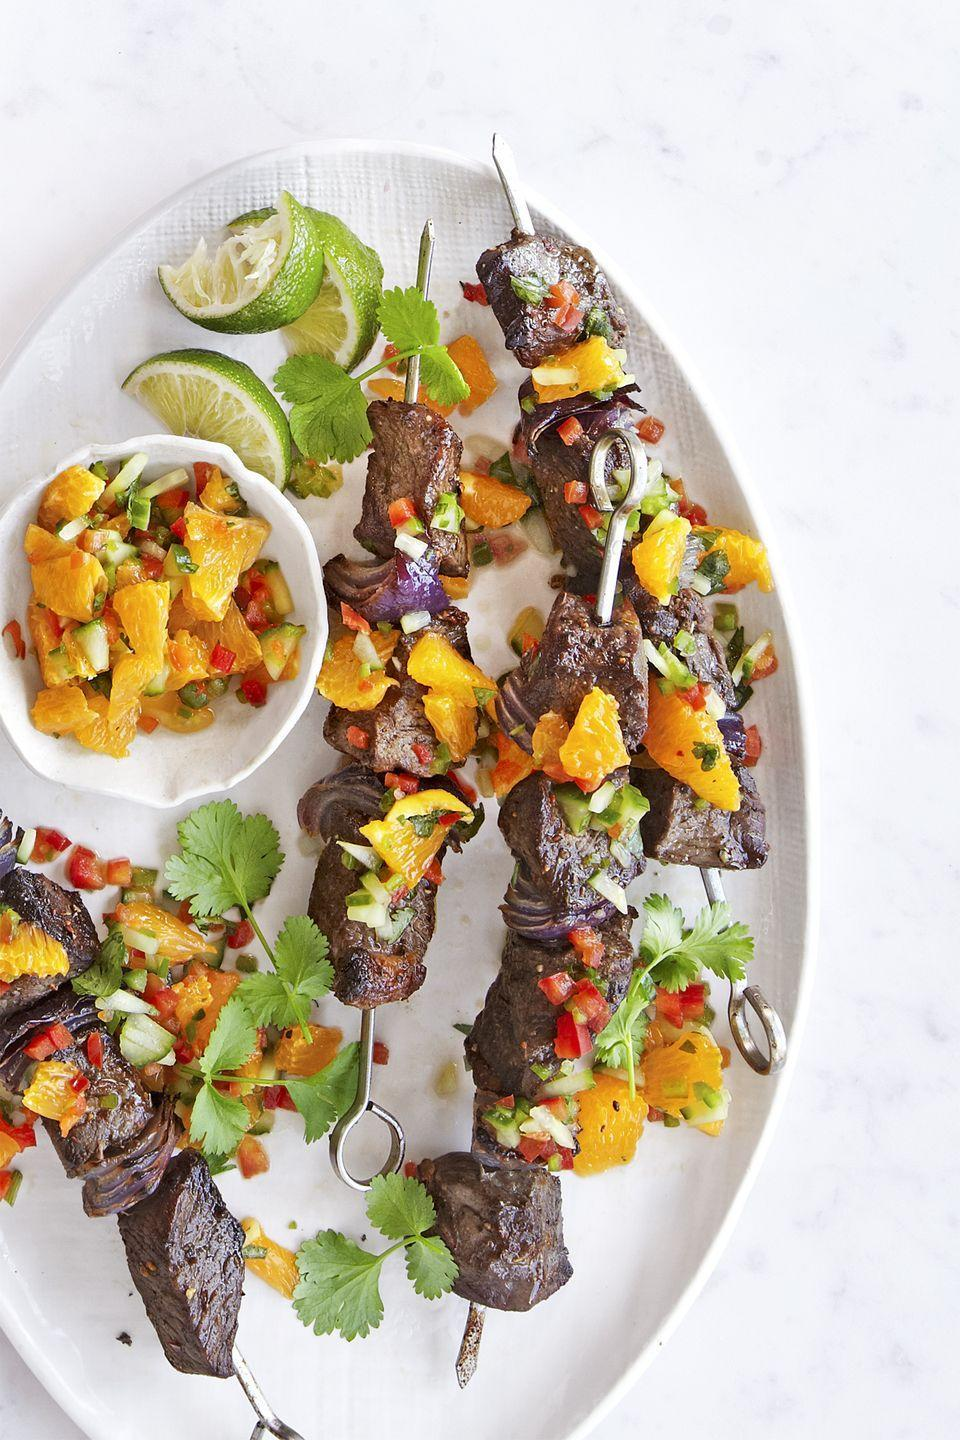 """<p>Made on the grill or in your oven, these steak kabobs are perfect for any time of year.</p><p><strong><a href=""""https://www.countryliving.com/food-drinks/recipes/a41071/broiled-steak-kabobs-with-orange-relish/"""" rel=""""nofollow noopener"""" target=""""_blank"""" data-ylk=""""slk:Get the recipe"""" class=""""link rapid-noclick-resp"""">Get the recipe</a>.</strong> </p>"""